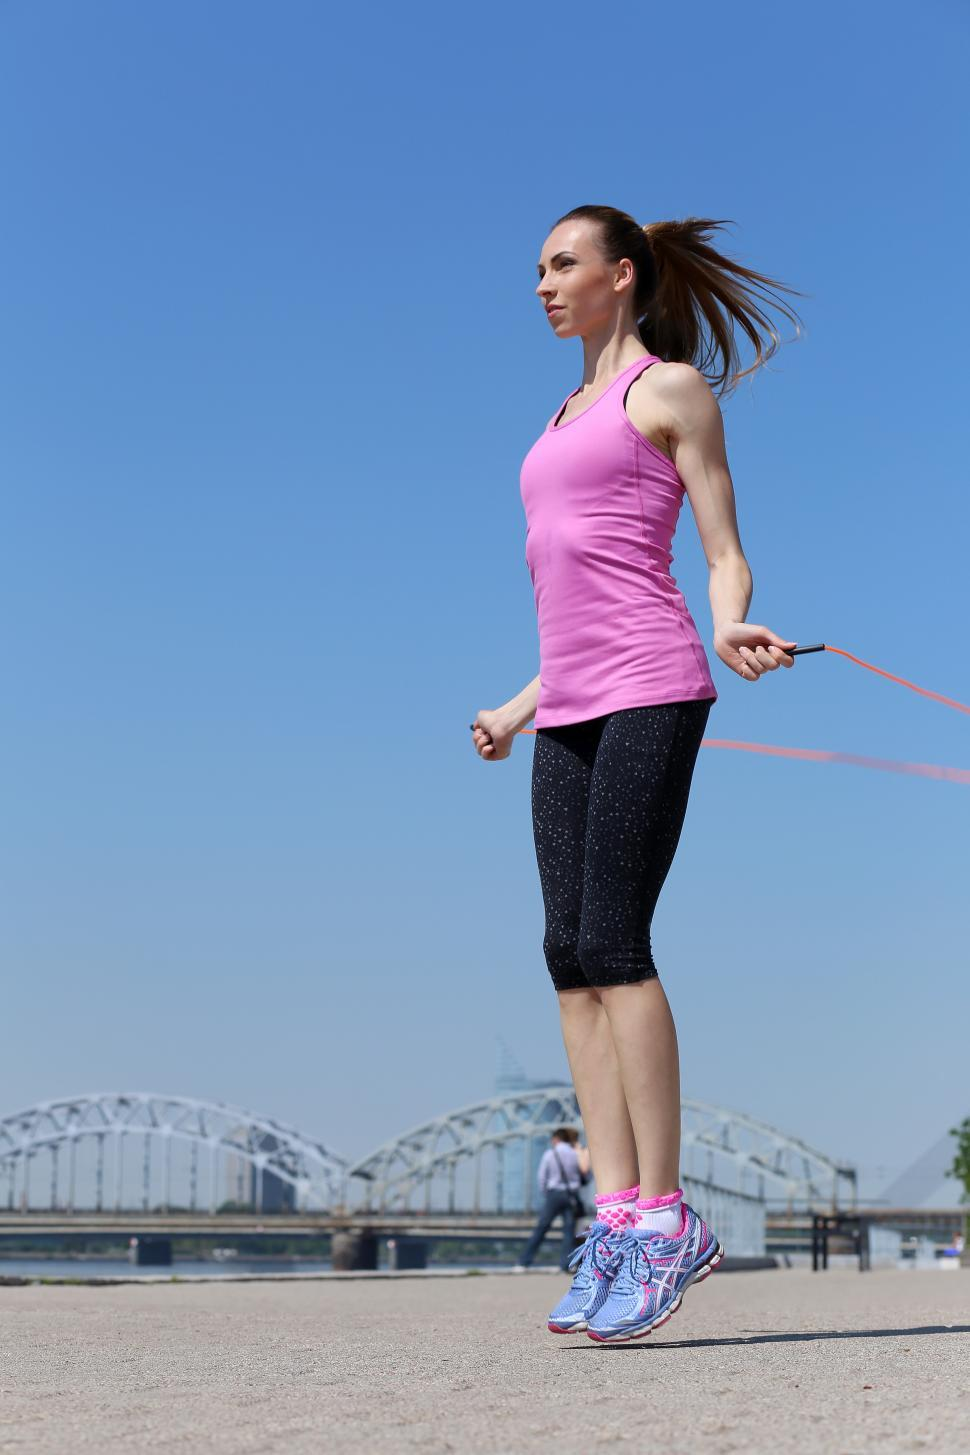 Download Free Stock Photo of Sport. Attractive girl with skipping rope